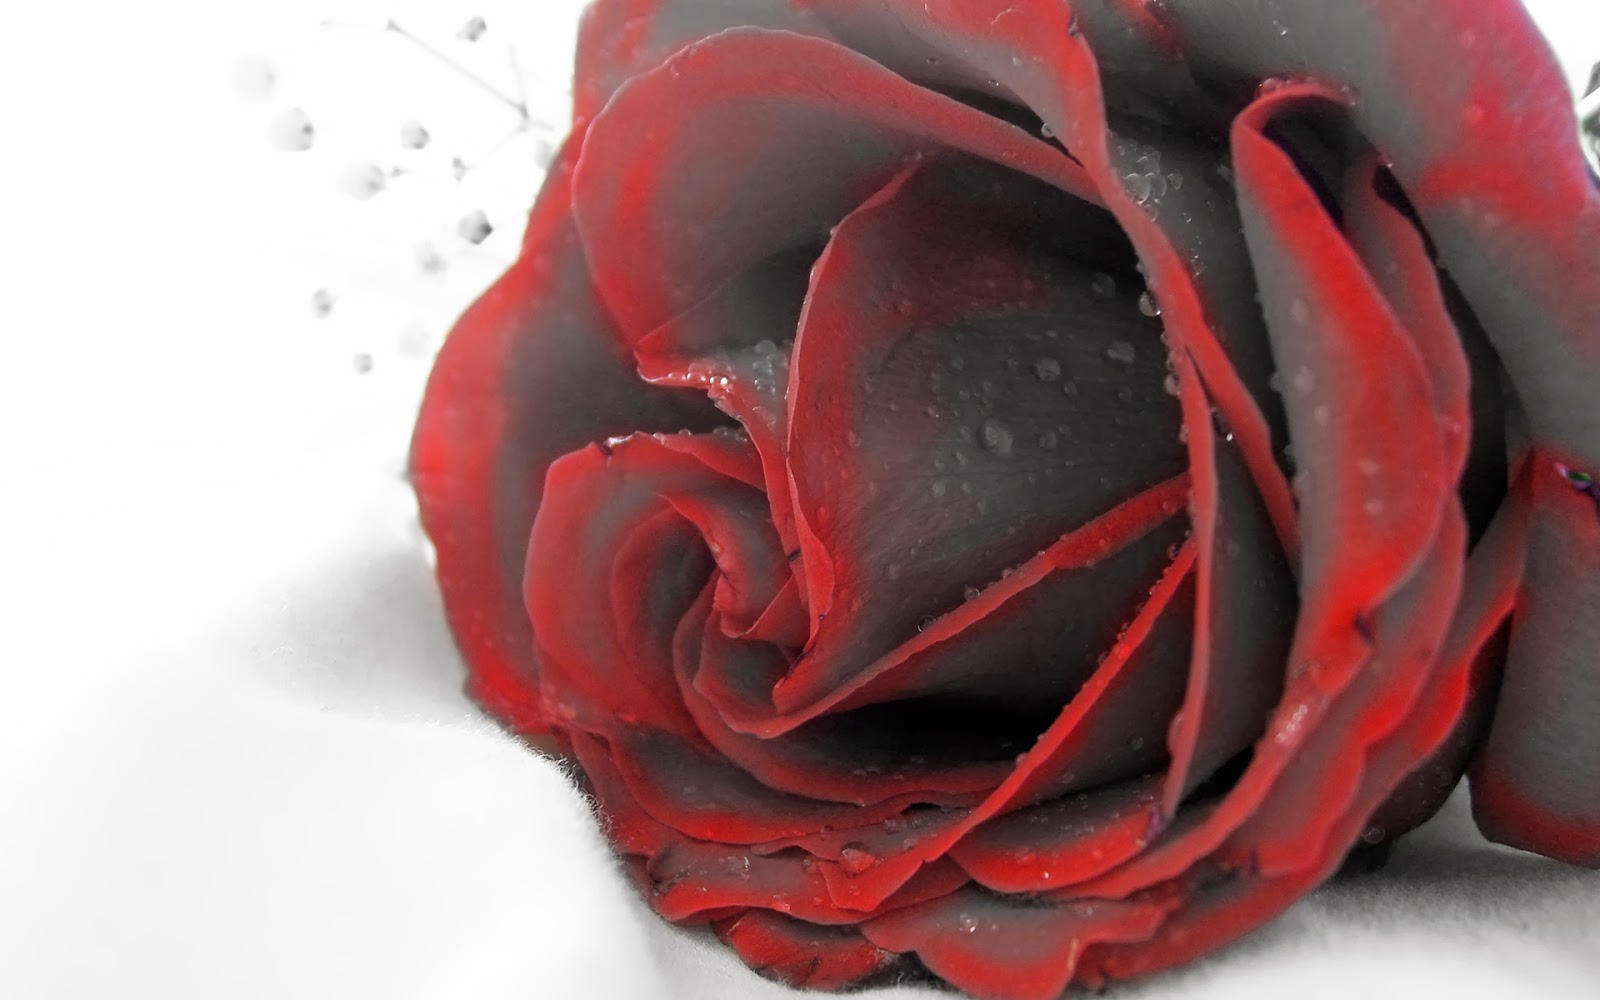 Maroon-rose-with-water-drops-white-background-HD-Template-image-free-download.jpg